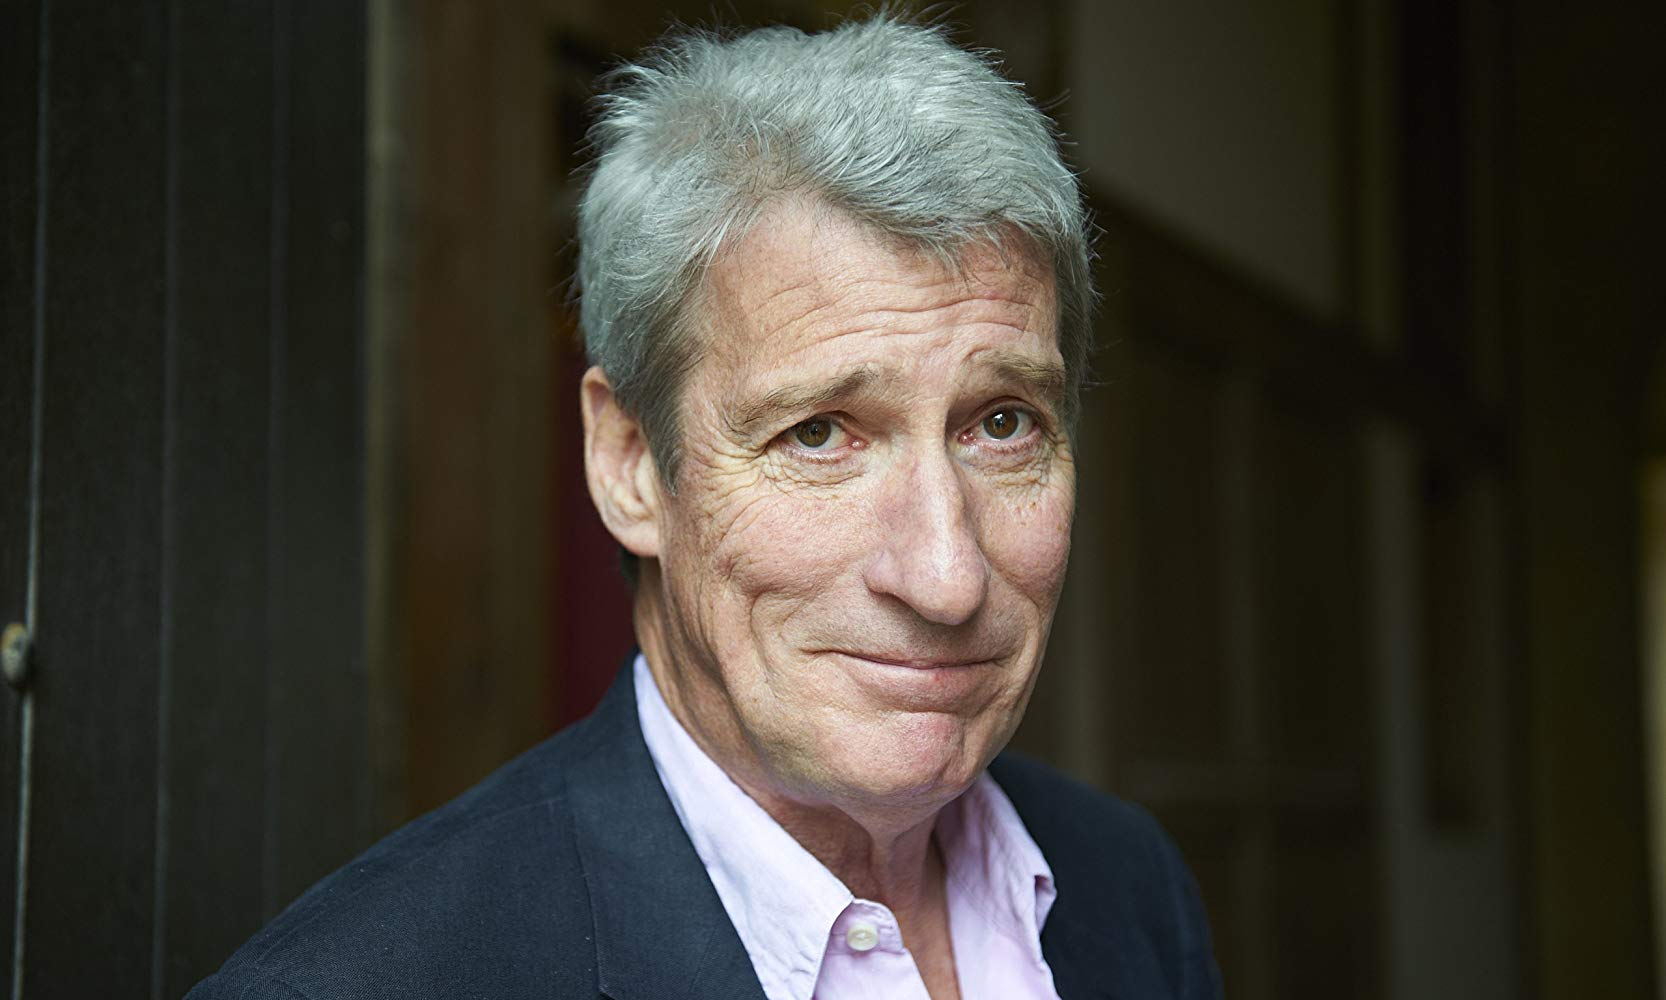 Jeremy Paxman, married, dating, partner, girlfriend, rumored breakup, wiki